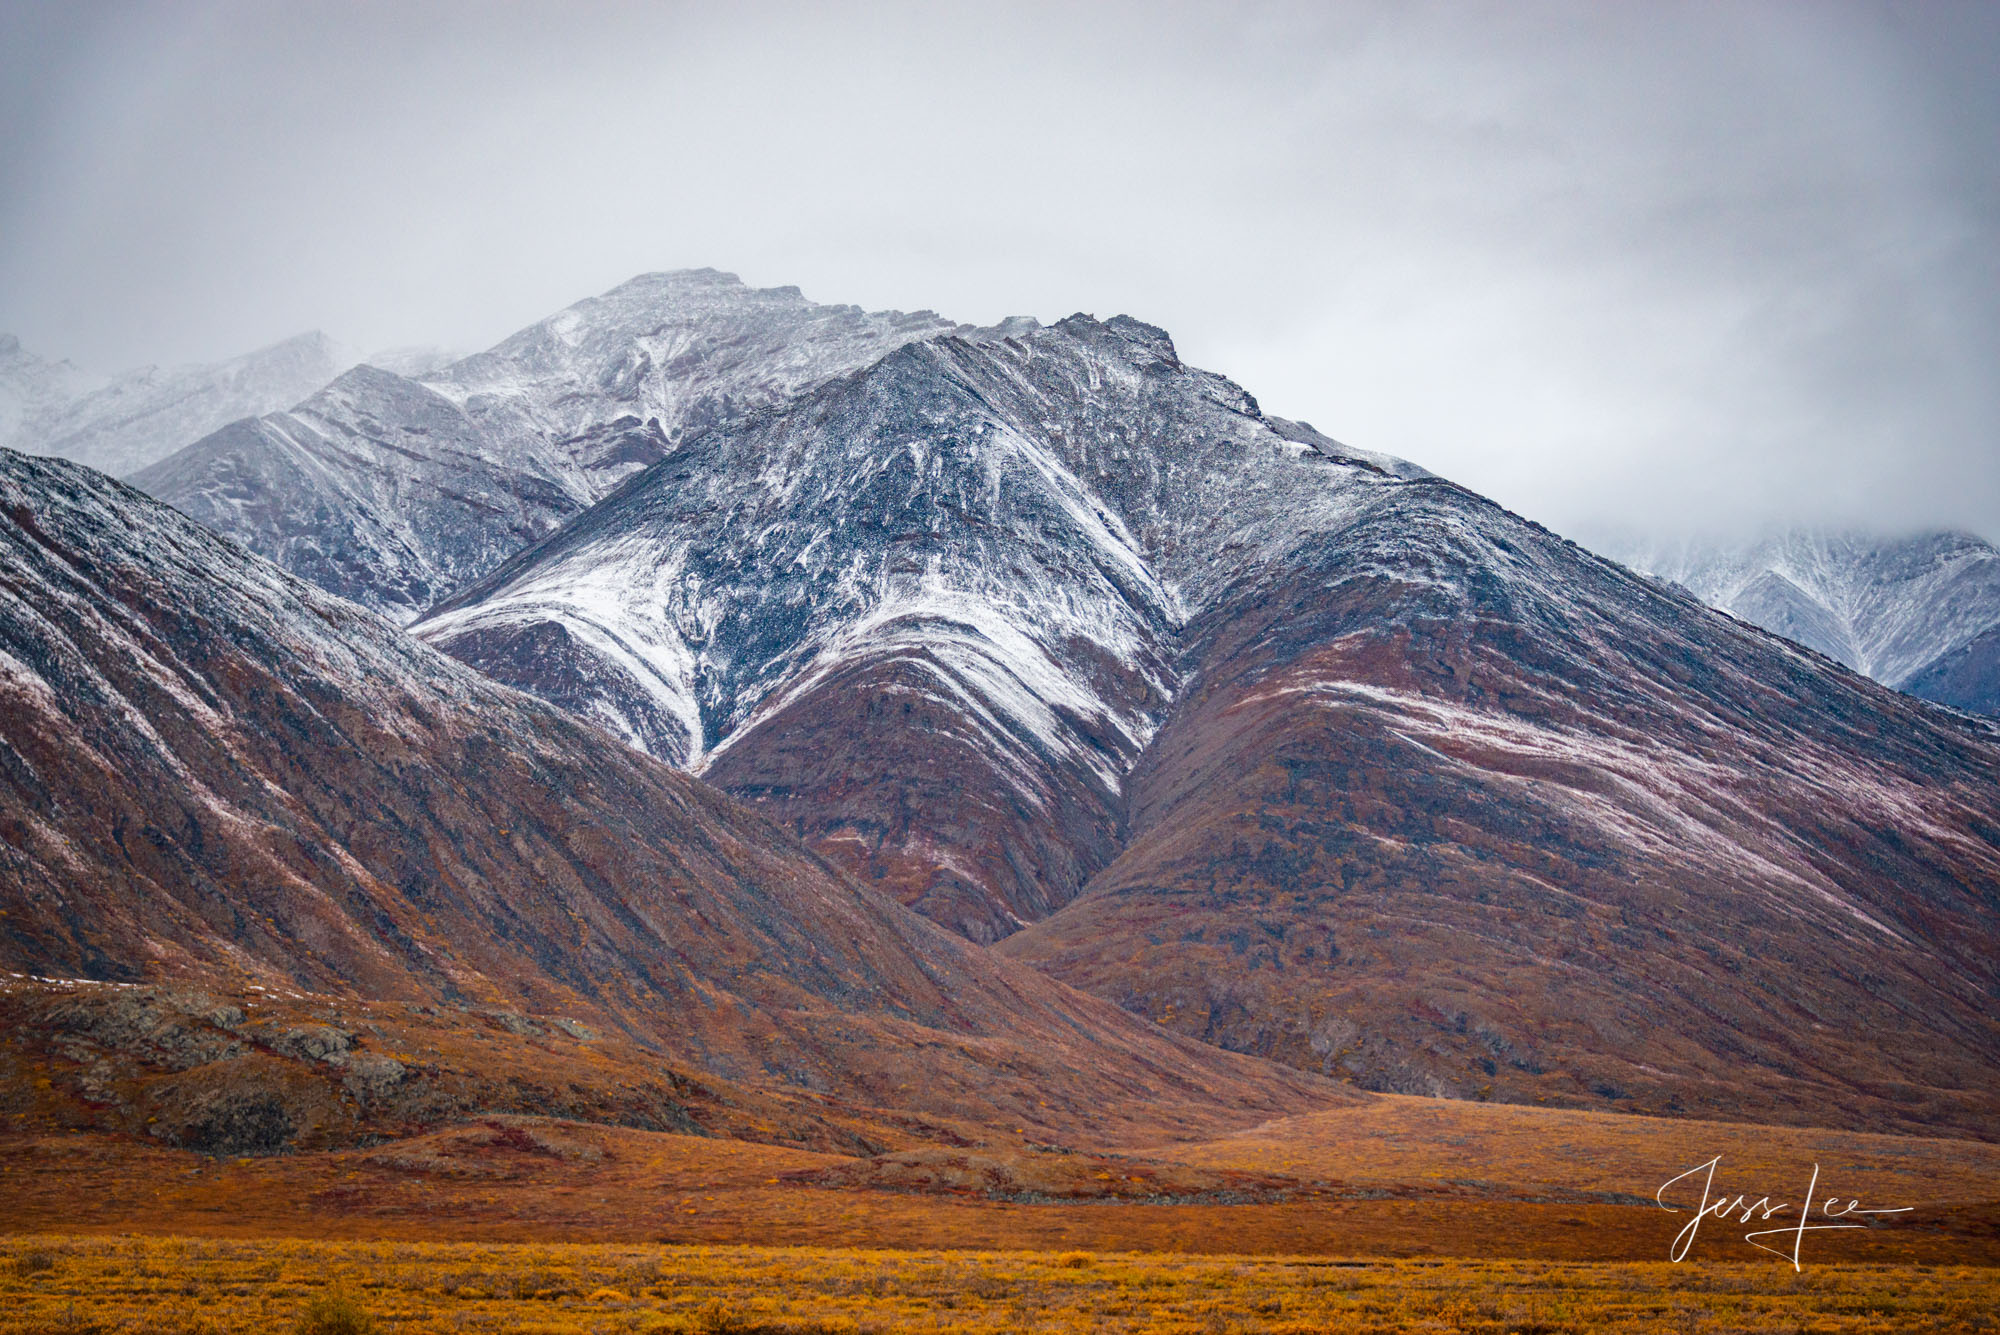 Light dusting of snow covering the hills in Alaska's arctic